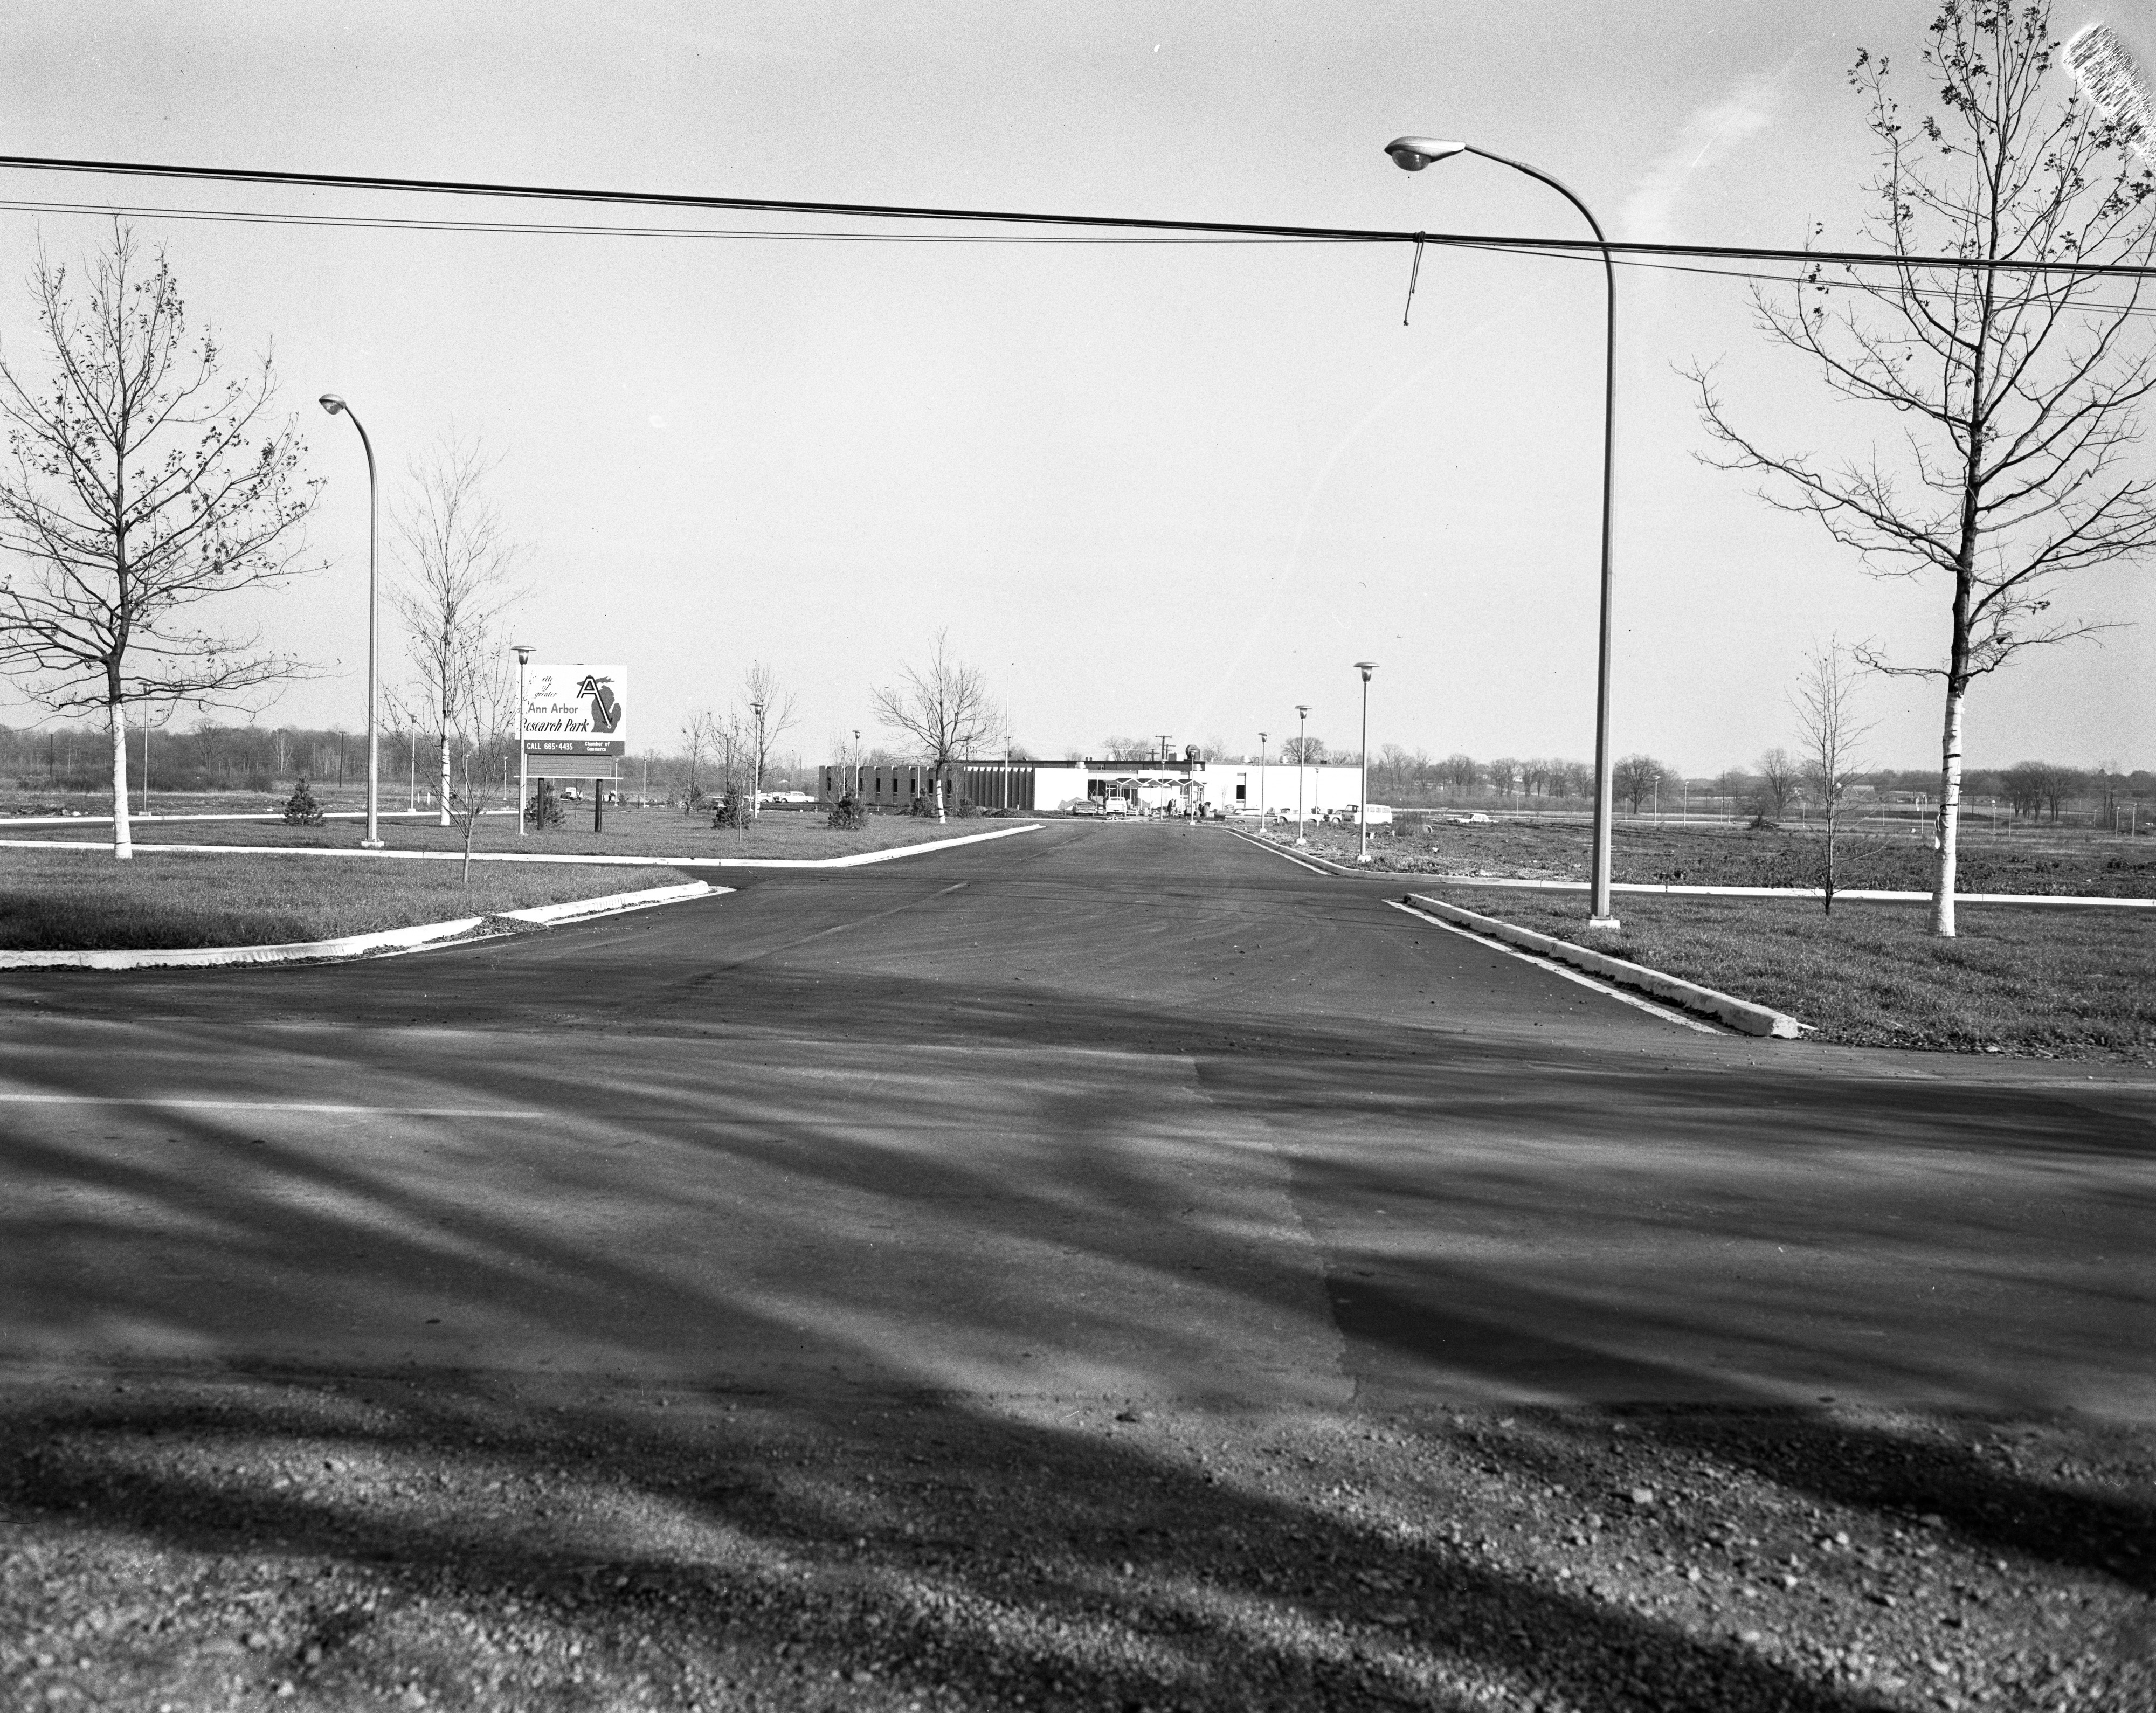 General Ground View of Ann Arbor Research Park, November 1962 image